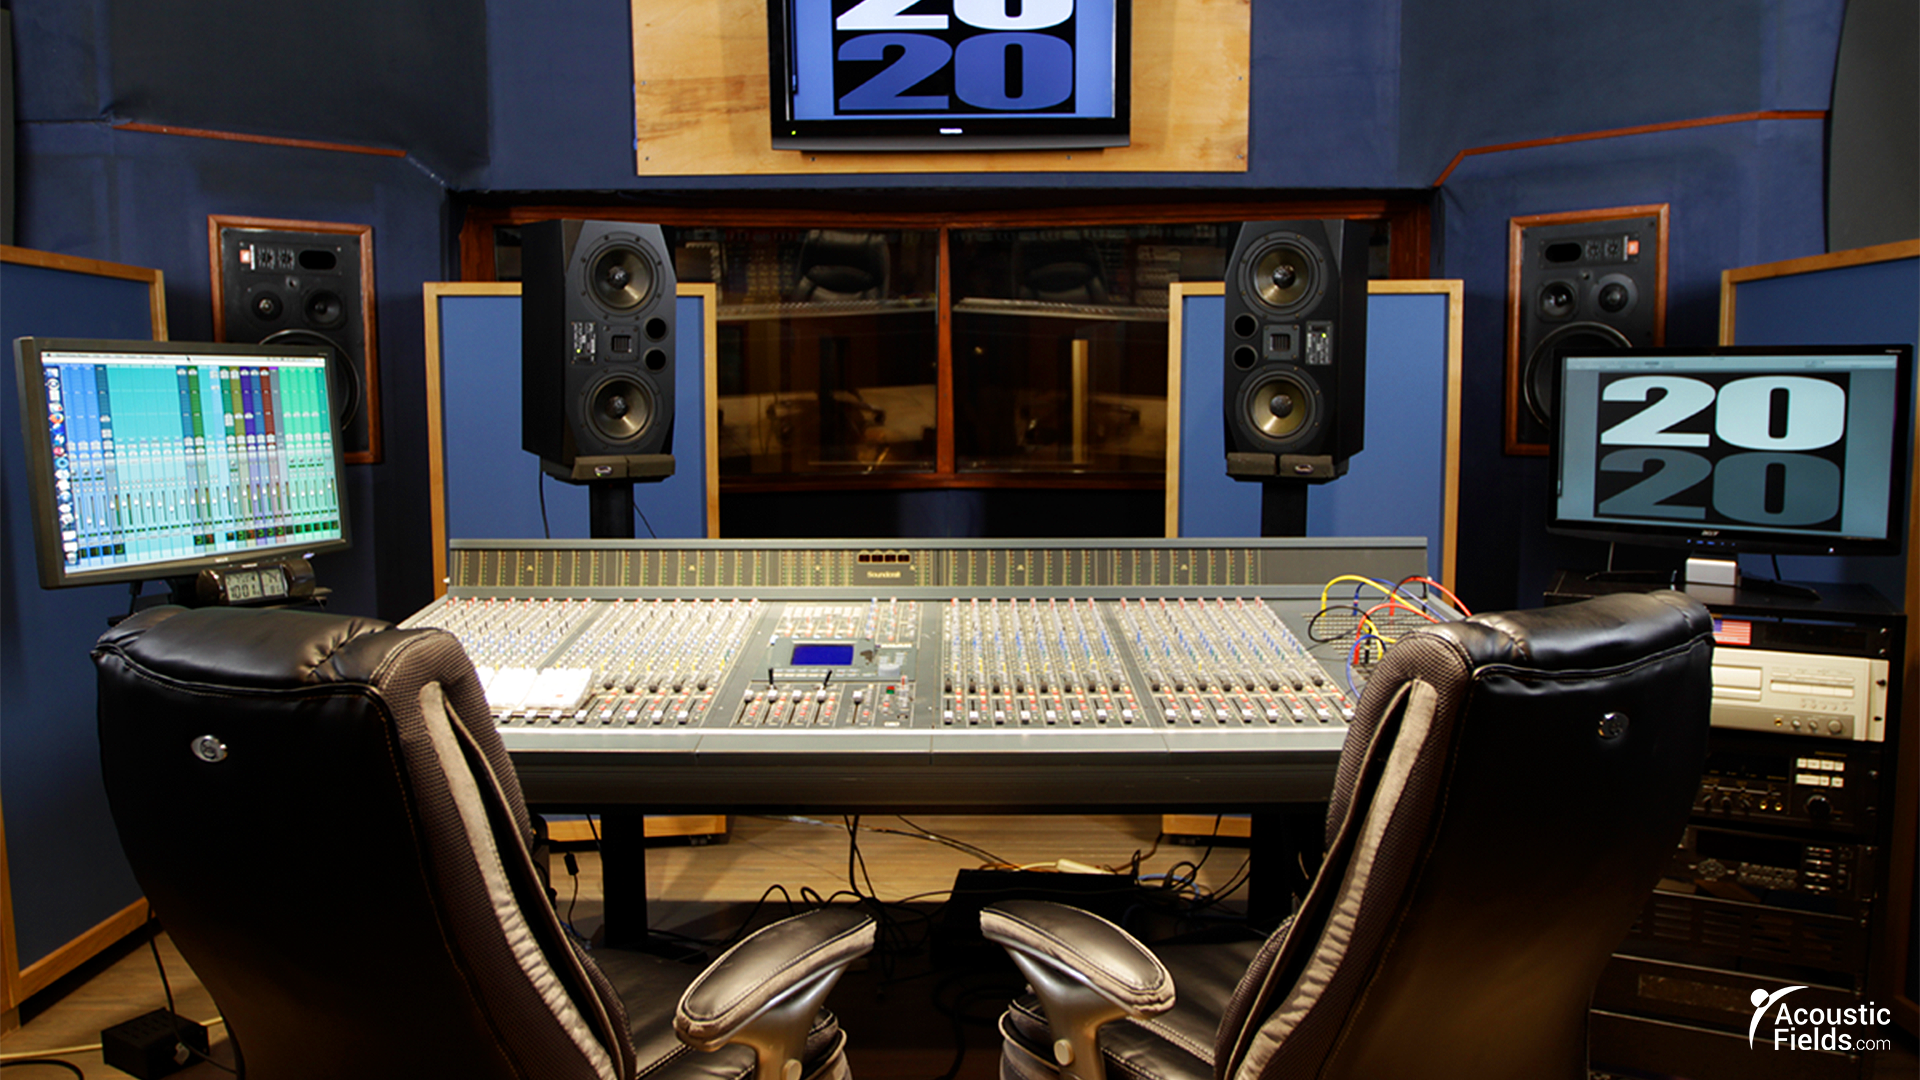 acda bass absorbers behind monitors in mixing room